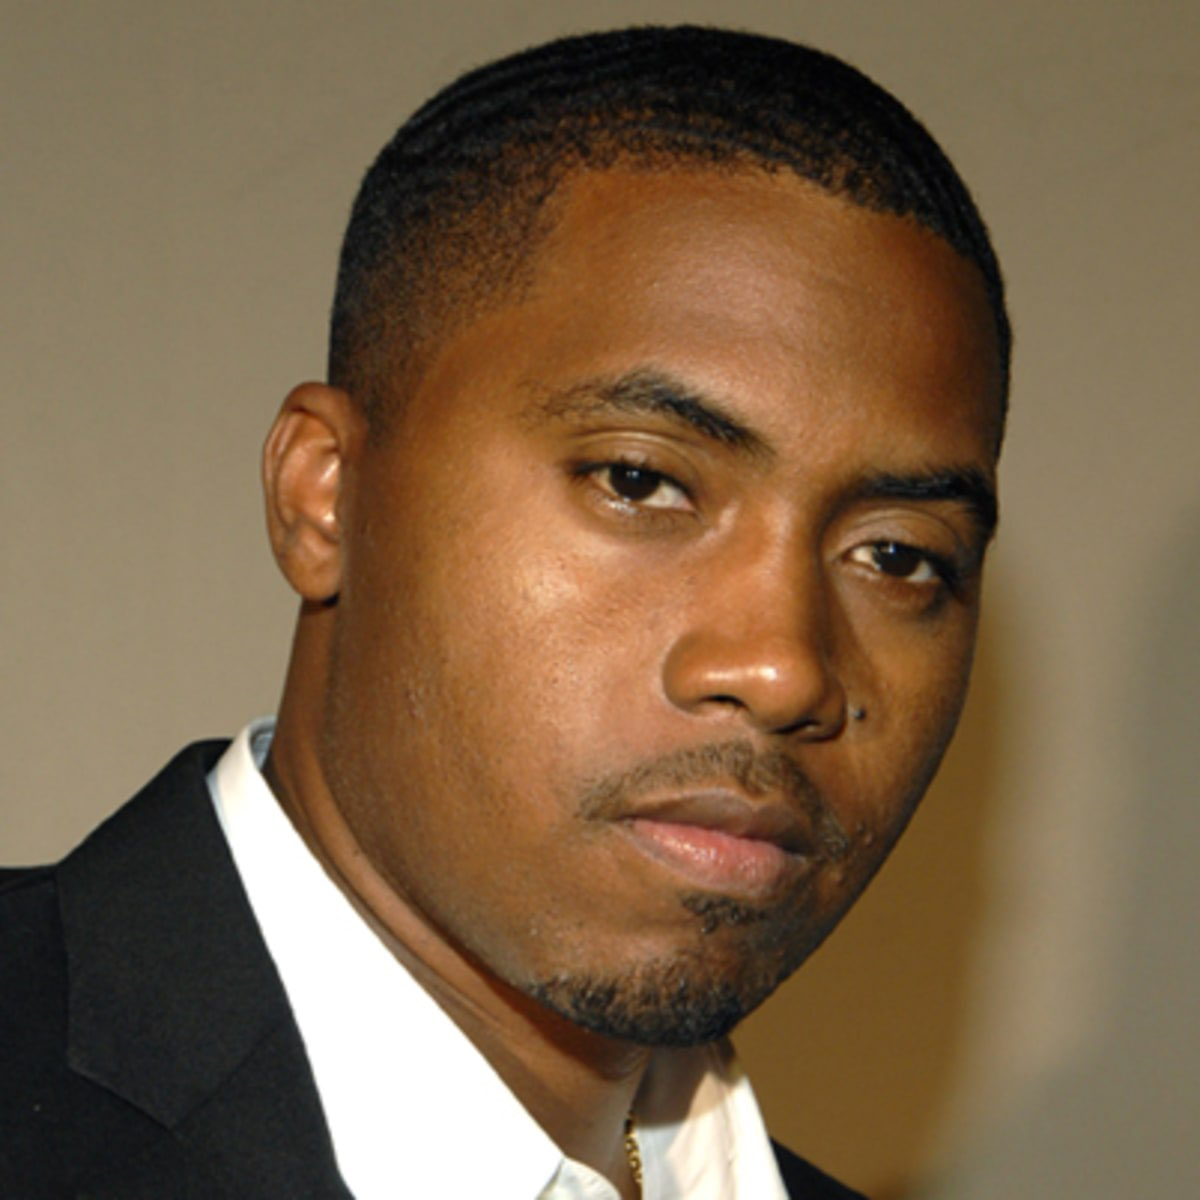 Happy Birthday to the one and only Nas!